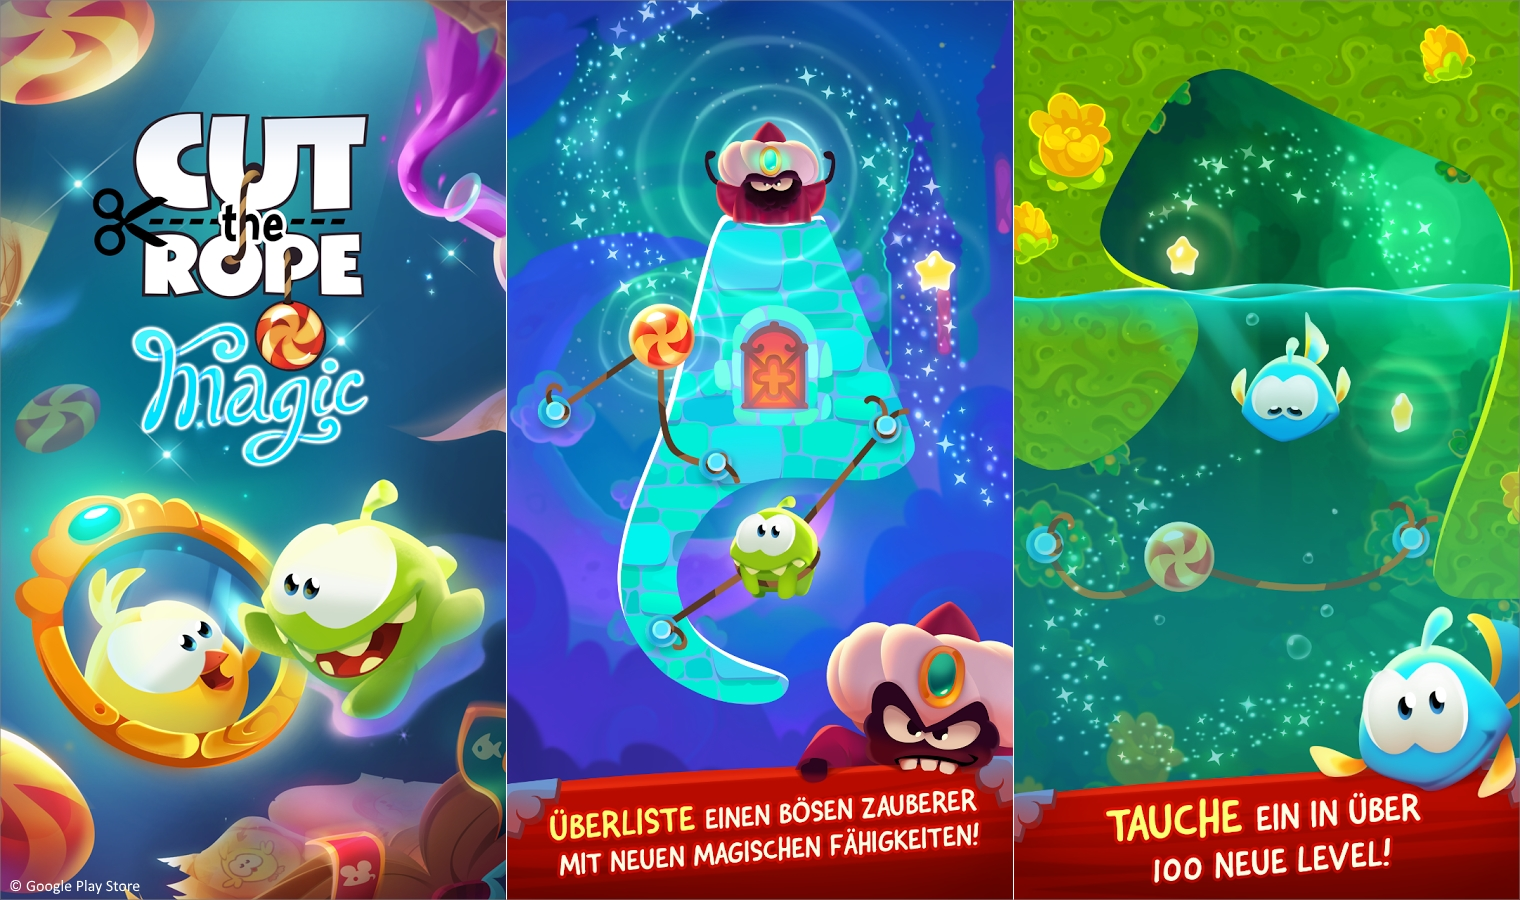 cut-the-rope-magic-omnom-app-fuer-iphone-android-ipad-smartphone-tablet-fb